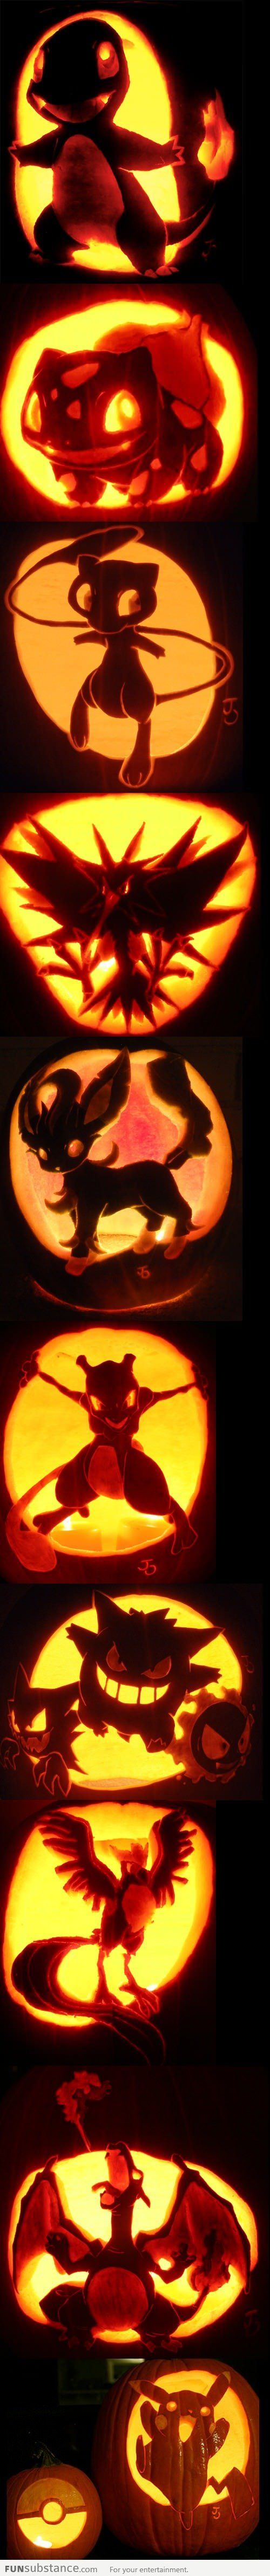 Pokemon pumpkin carvings